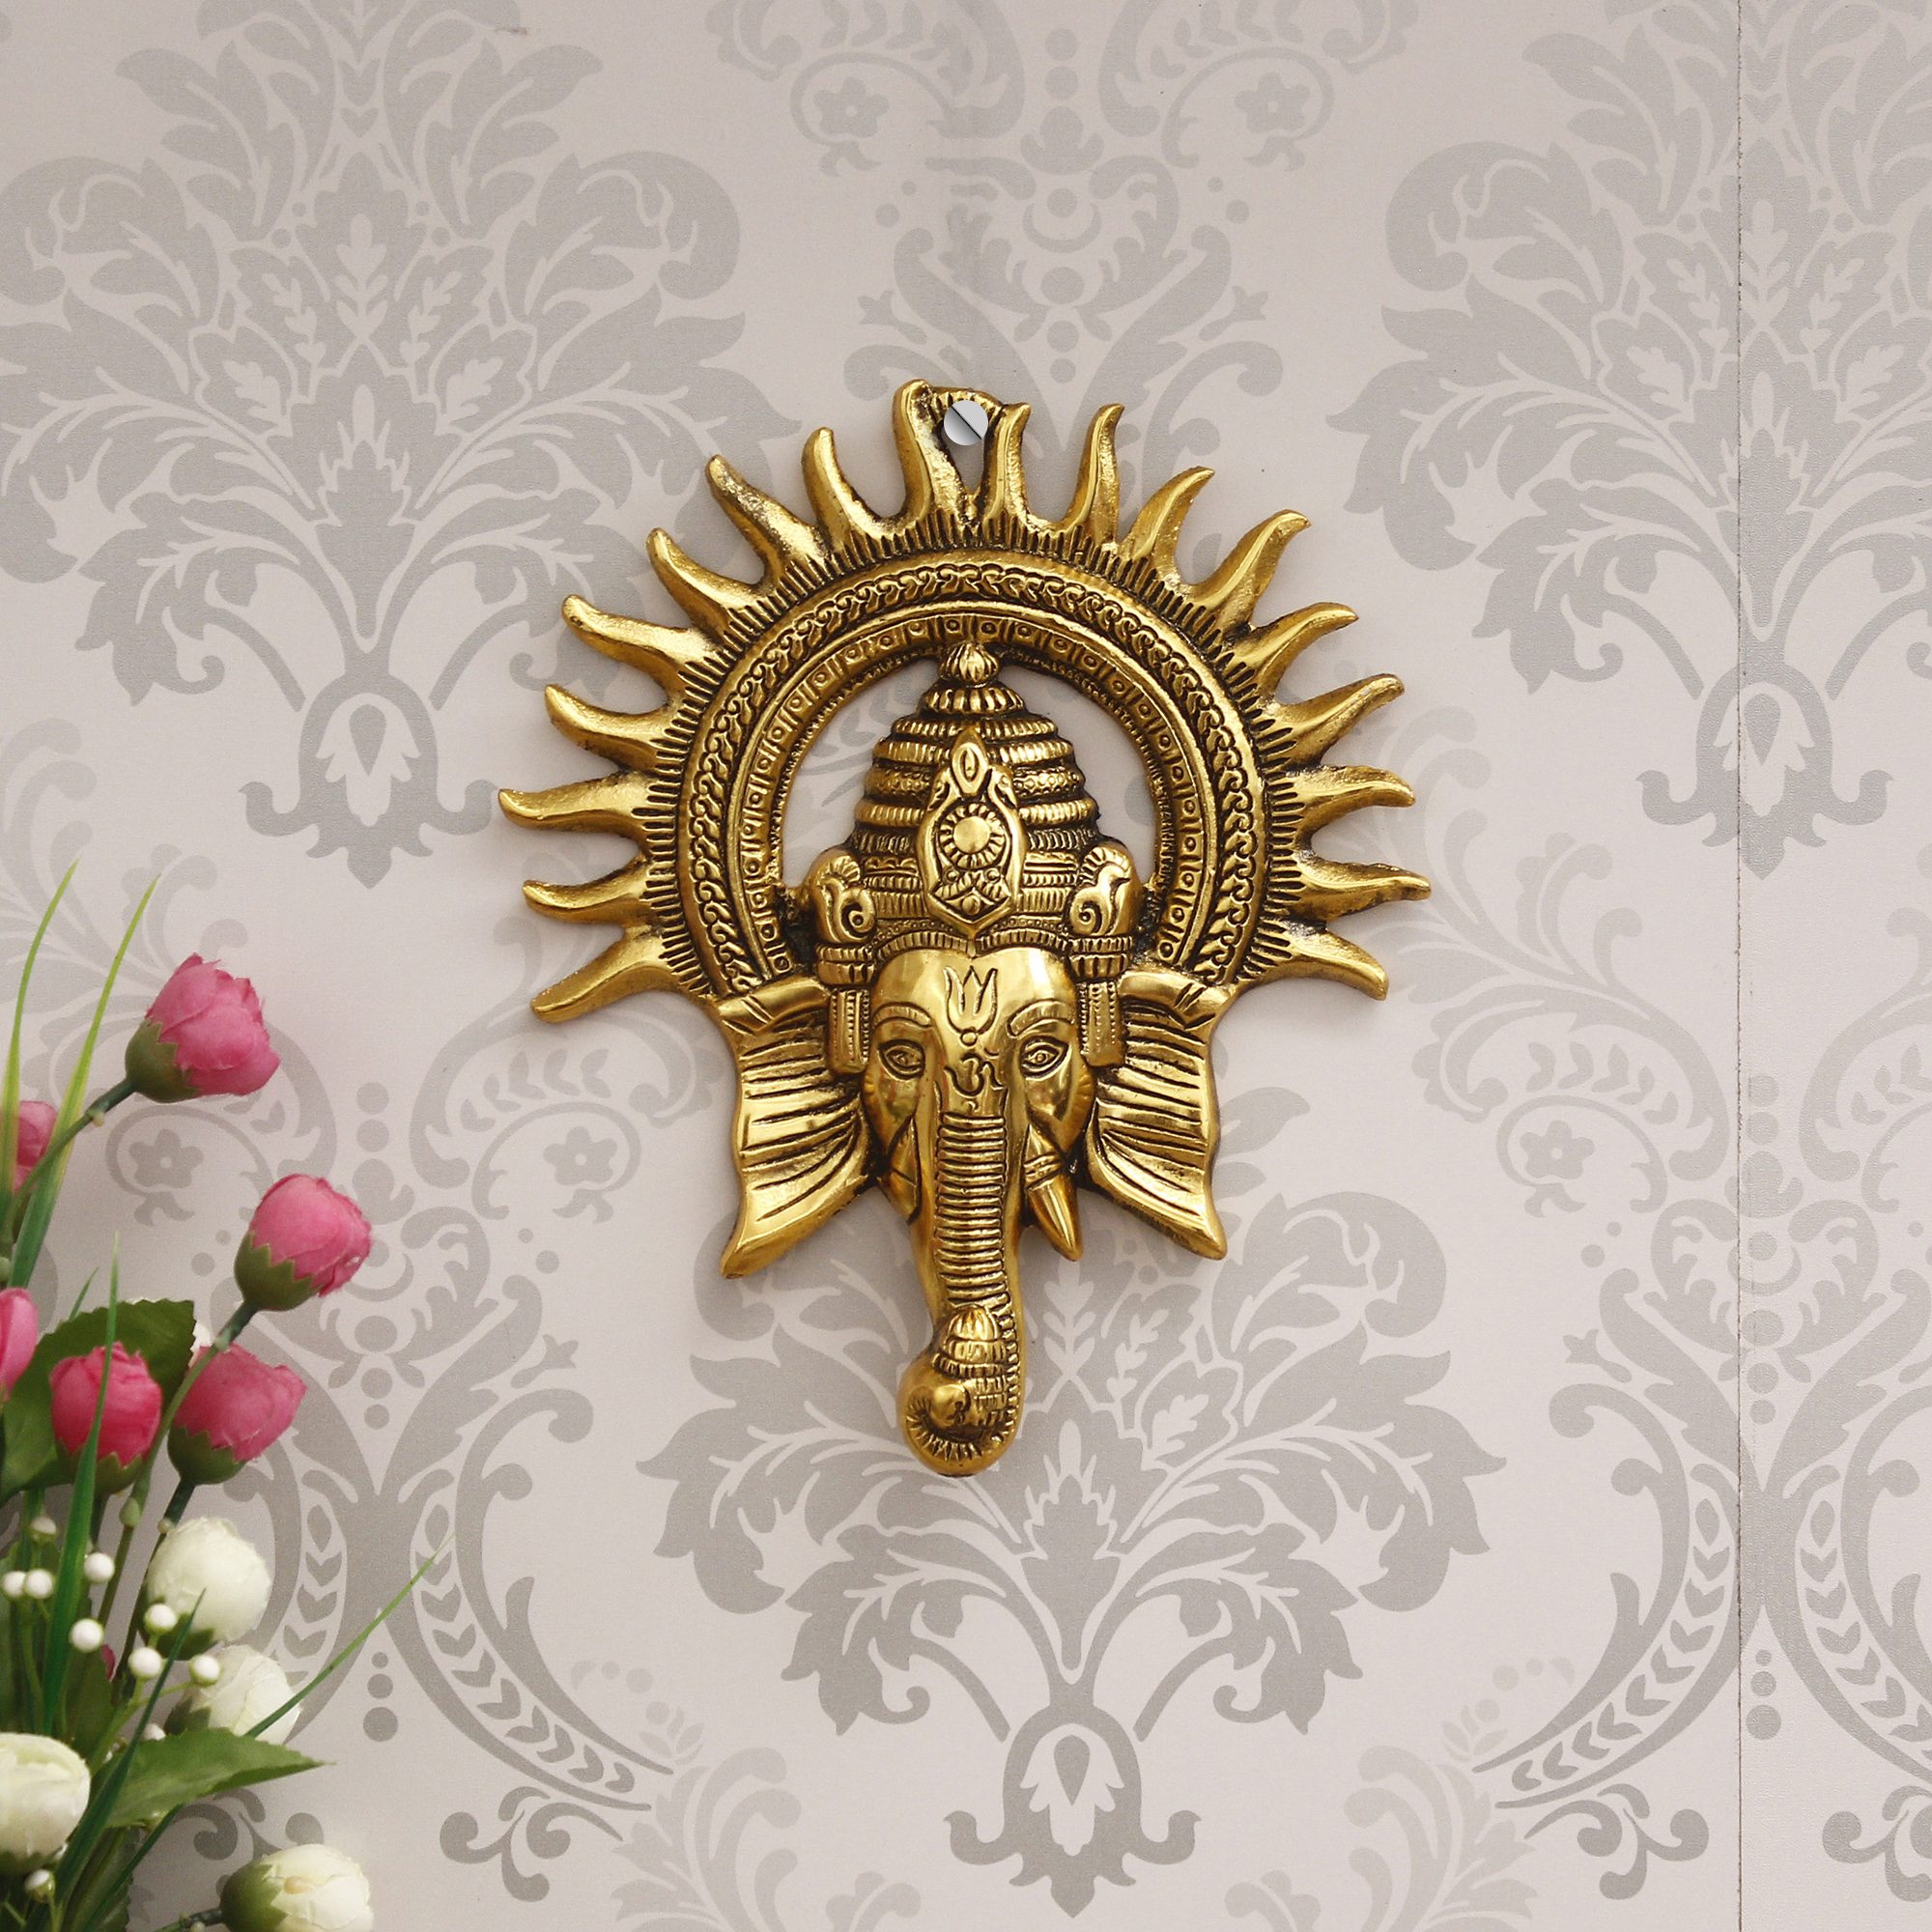 Golden Lord Ganesha with Sun Decorative Metal Wall Hanging Indian Home Decor